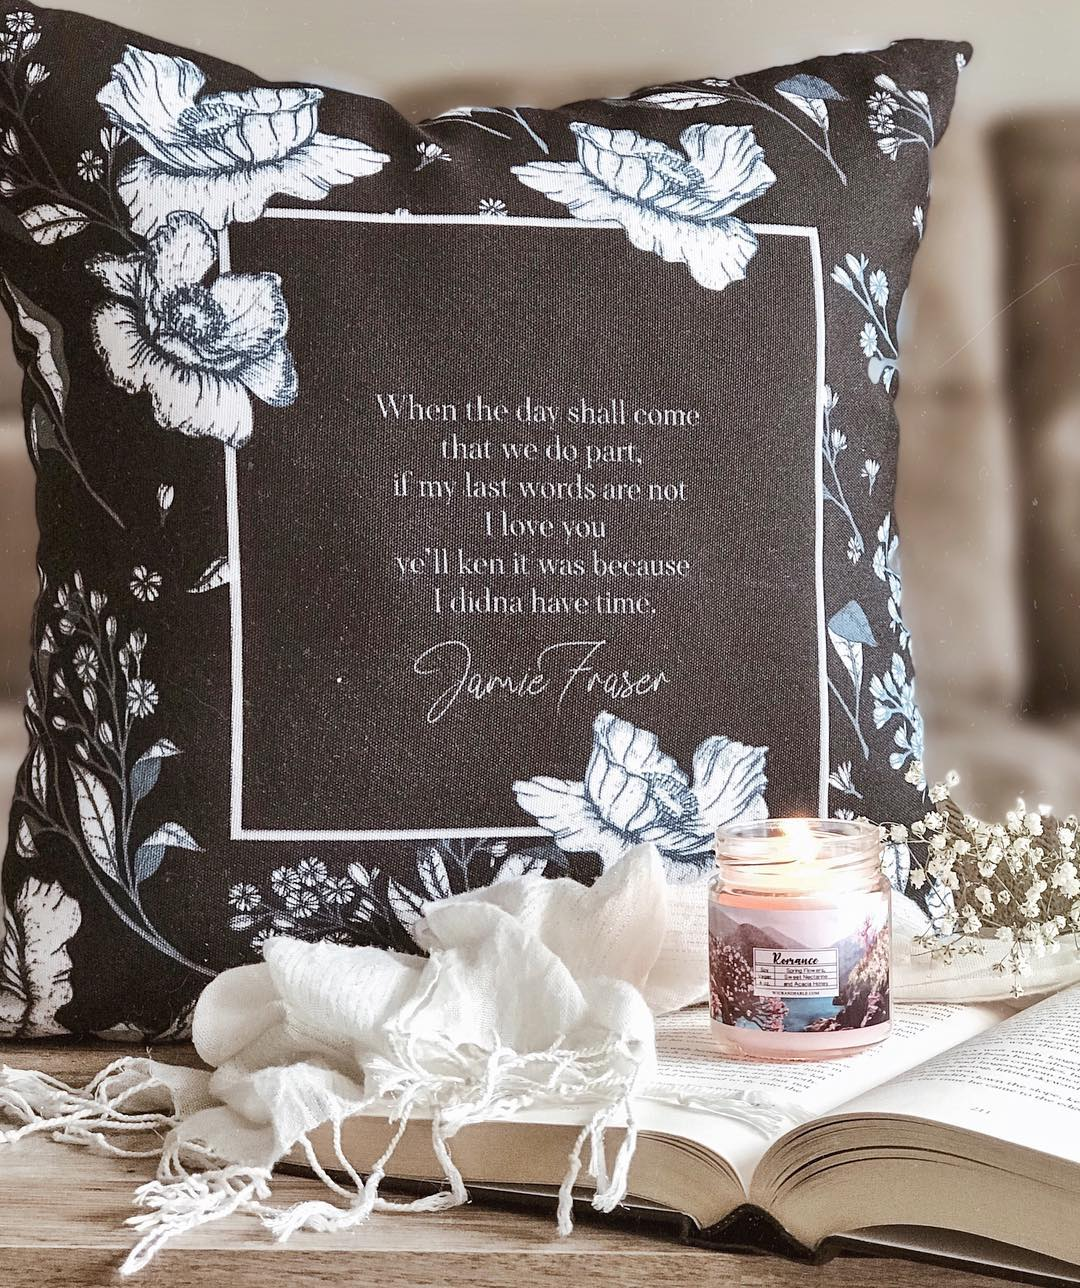 When the day shall come... Jamie Fraser Quote Pillow - LitLifeCo.